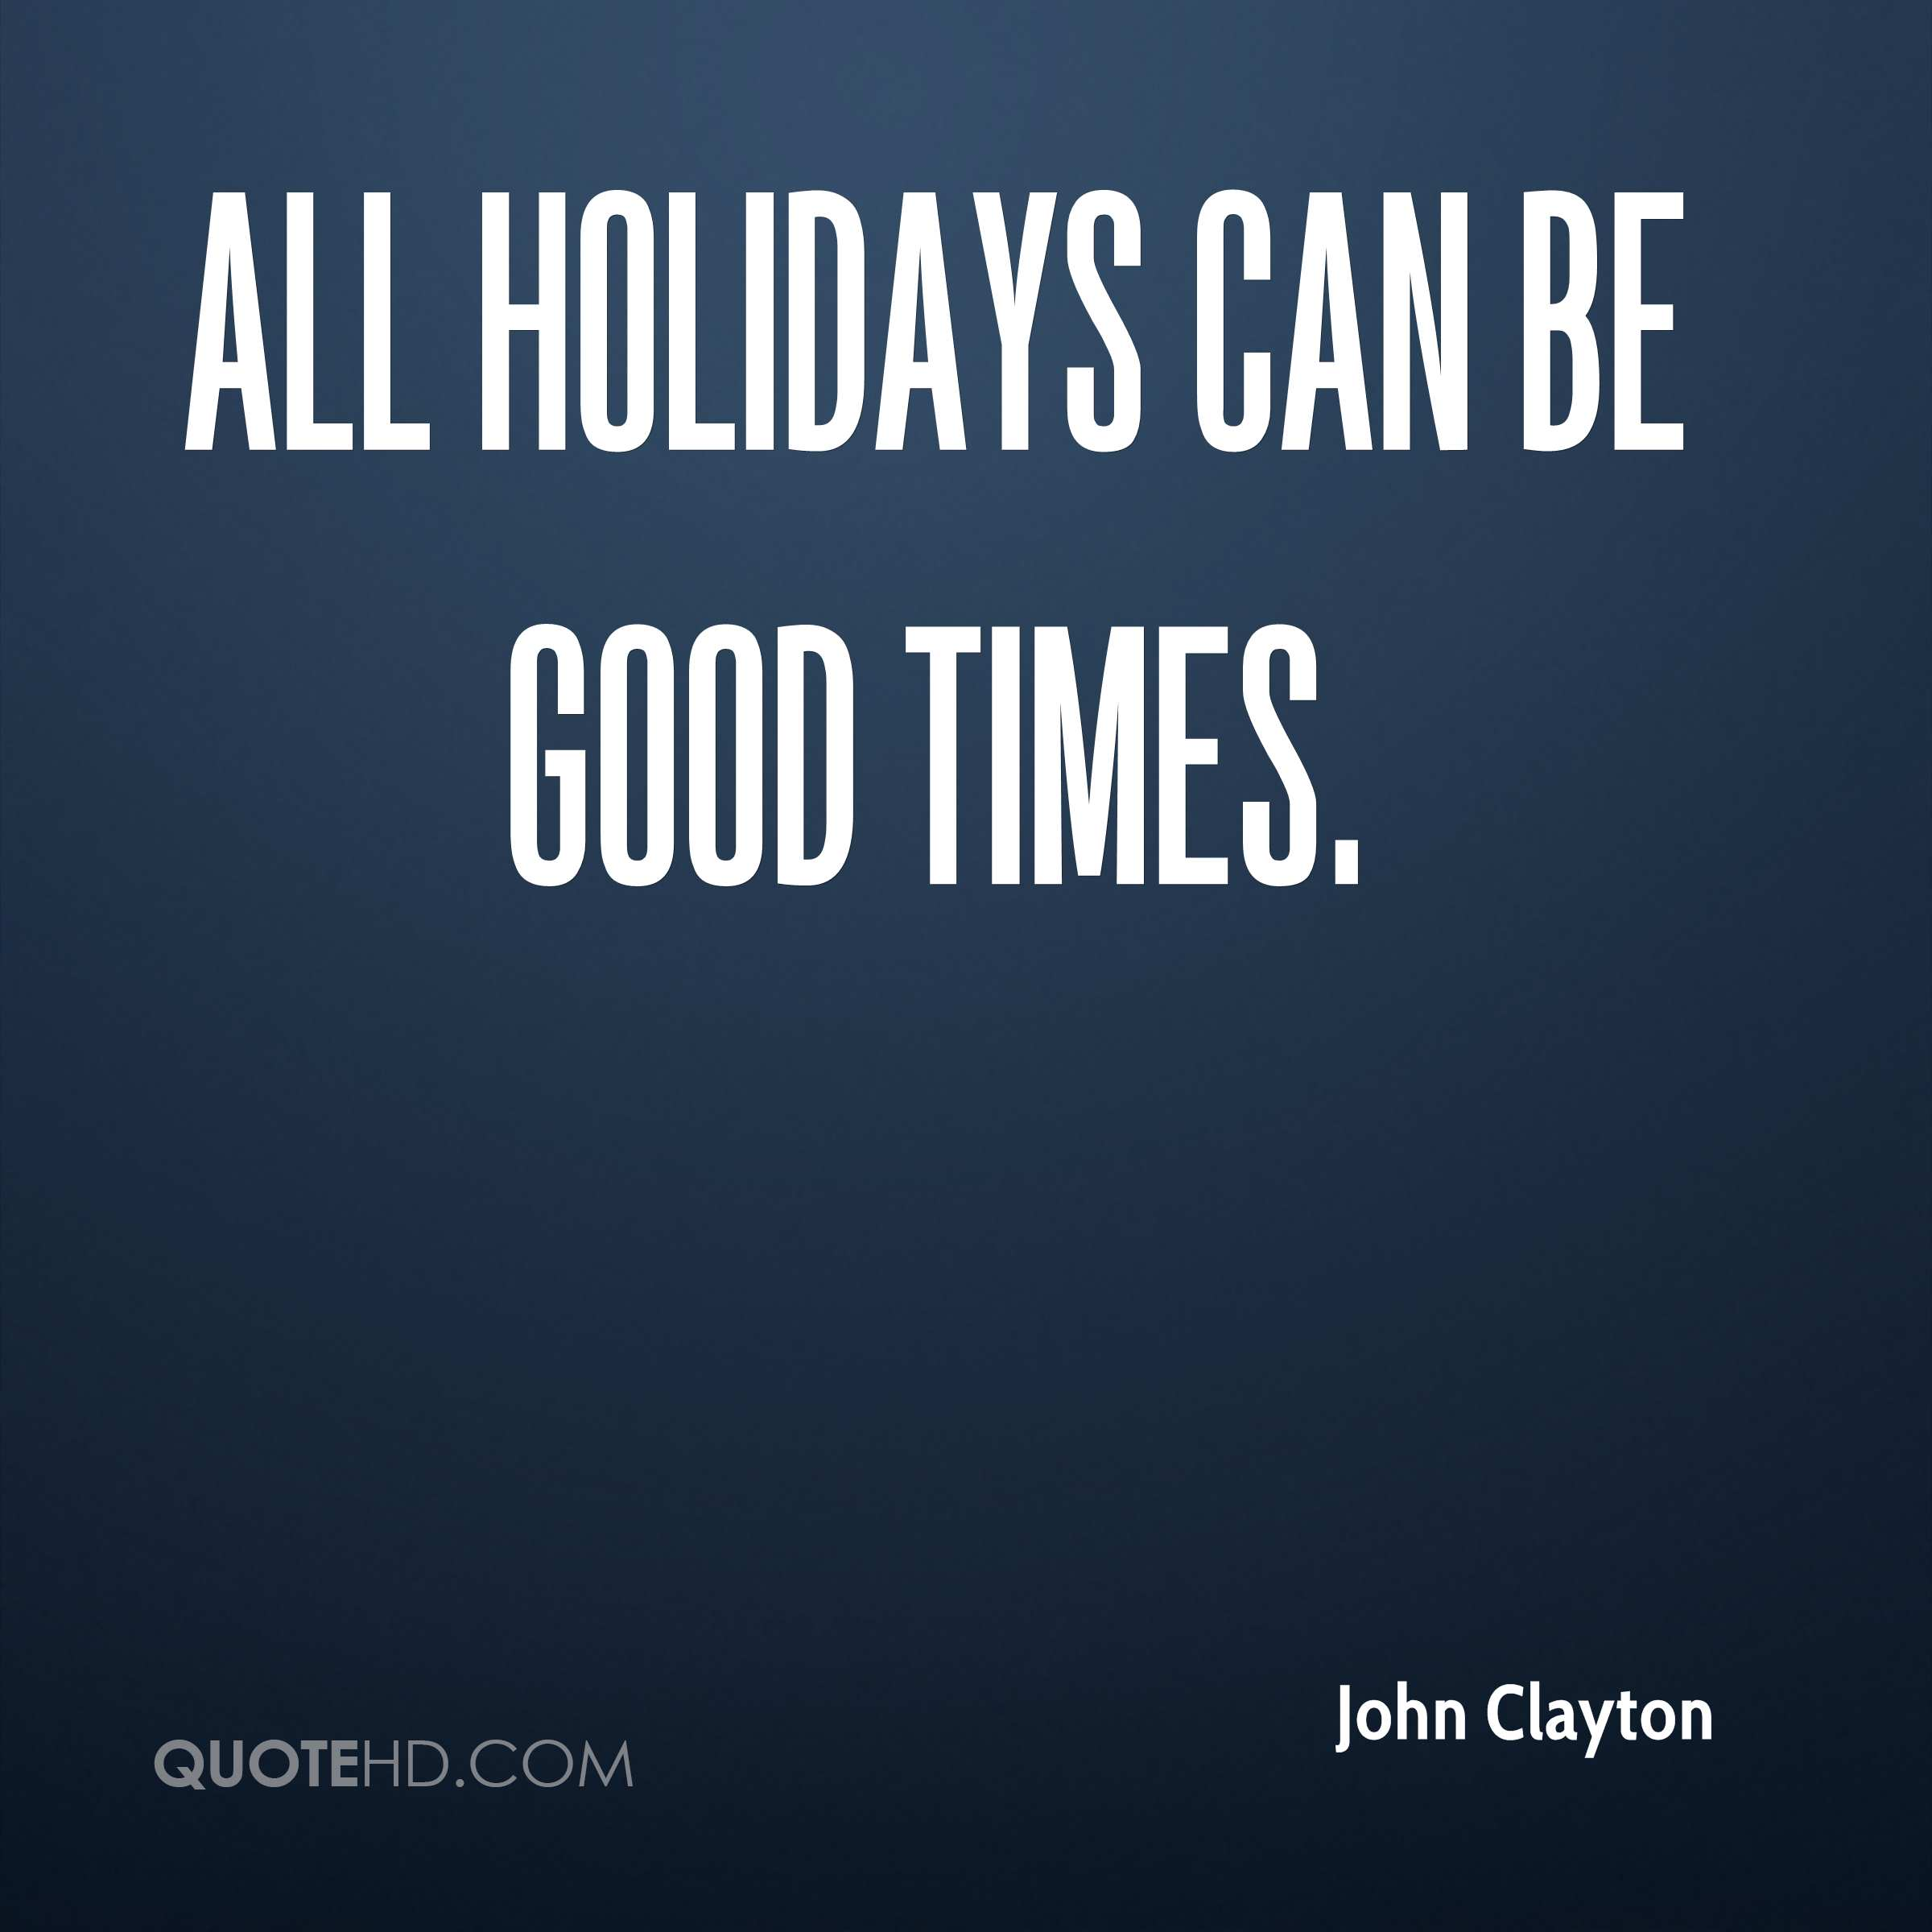 All holidays can be good times.